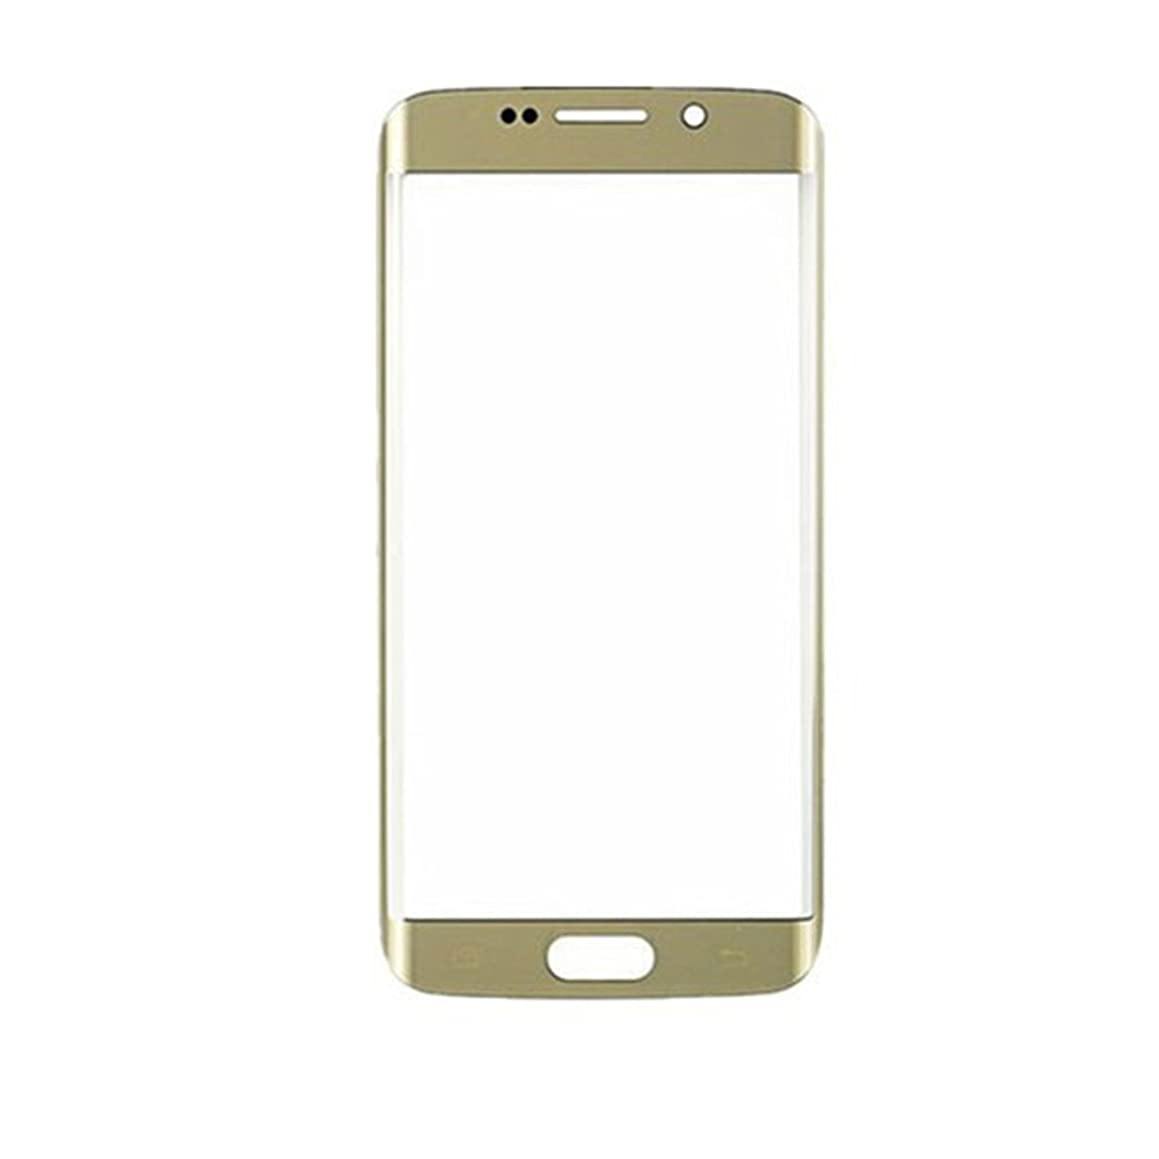 New Replacement Front Touch Screen Glass Outer Lens for Samsung for Galaxy S6 Edge SM- G925A G925P G925T G925V G925R4 G925F with Tools Kit and Adhesive (Gold)